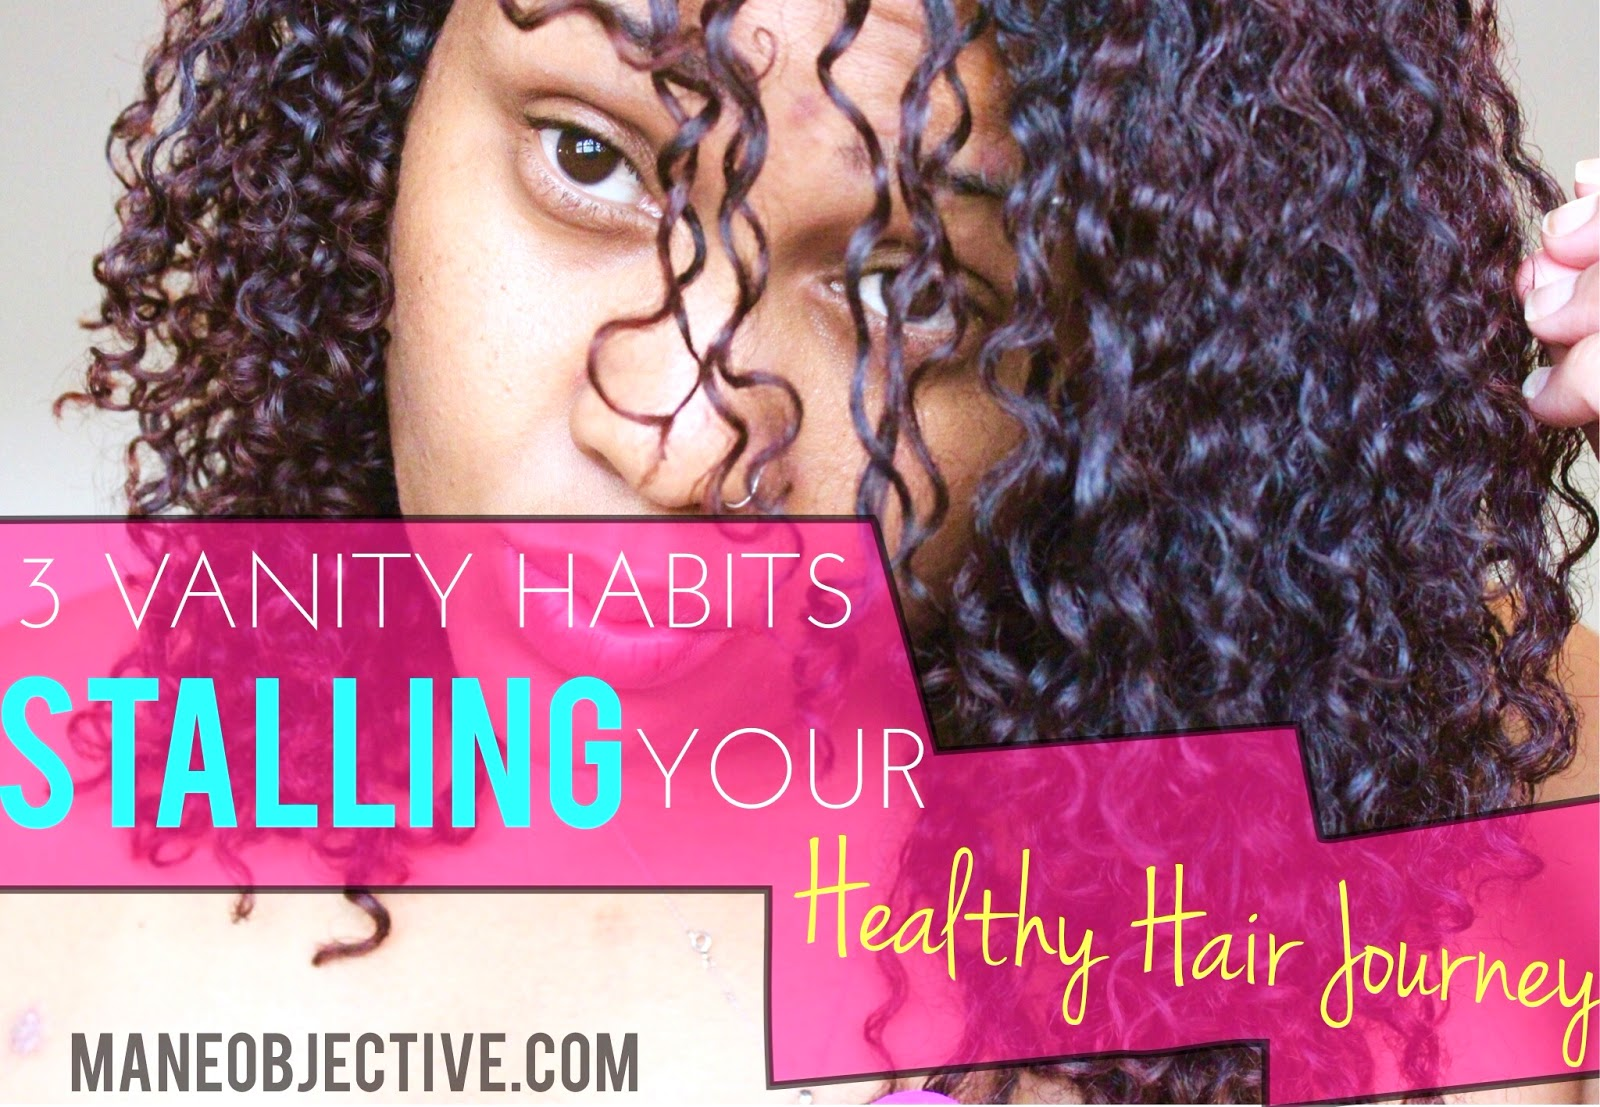 3 Vanity Habits Stalling Your Healthy Natural Hair Journey